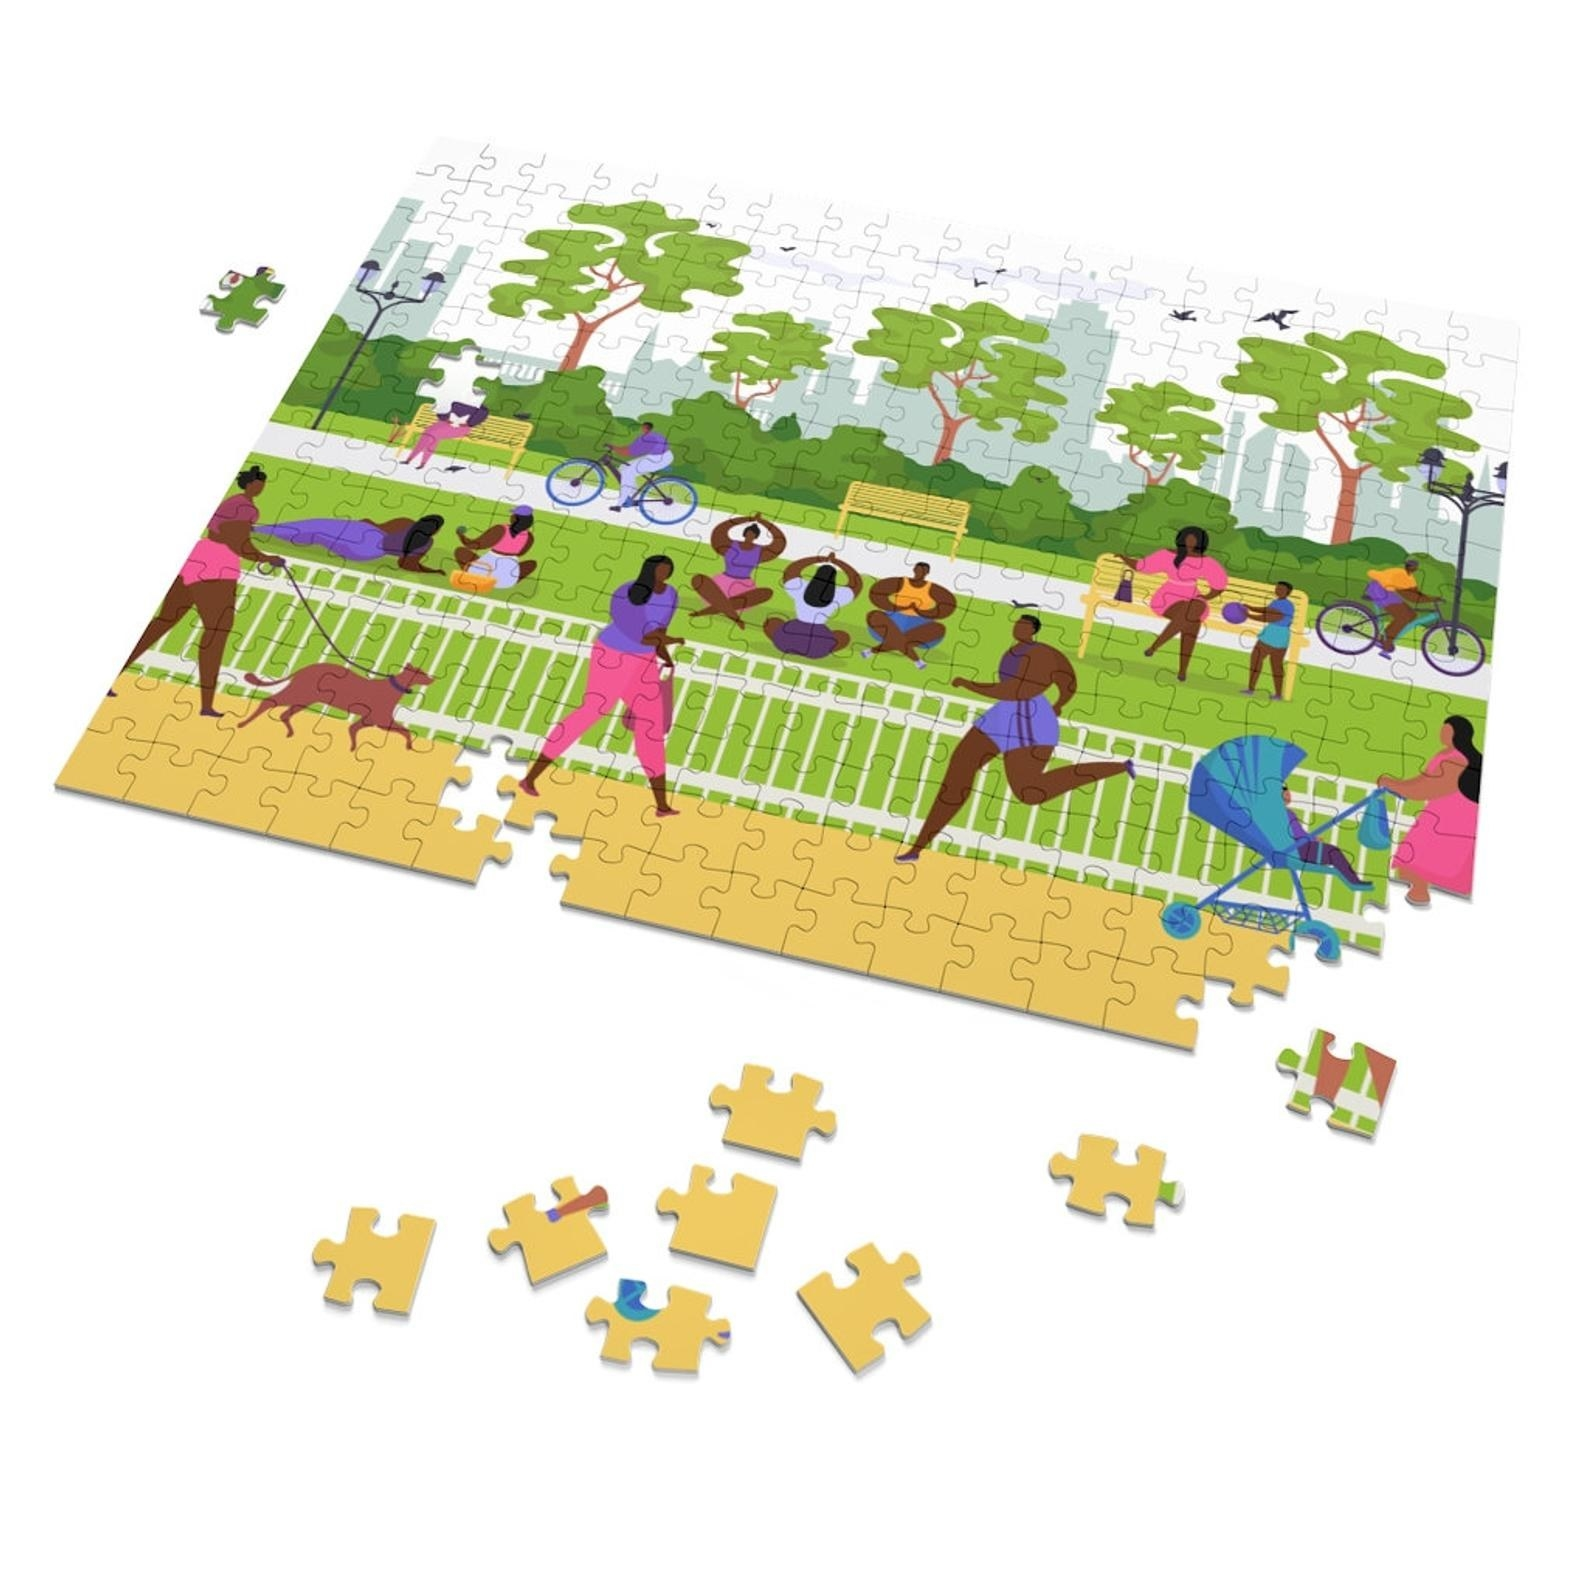 a puzzle with an animated park scene that includes folks doing yoga, walking, running, biking, walking their dogs or kids in strollers — all in a park that looks super fun to visit